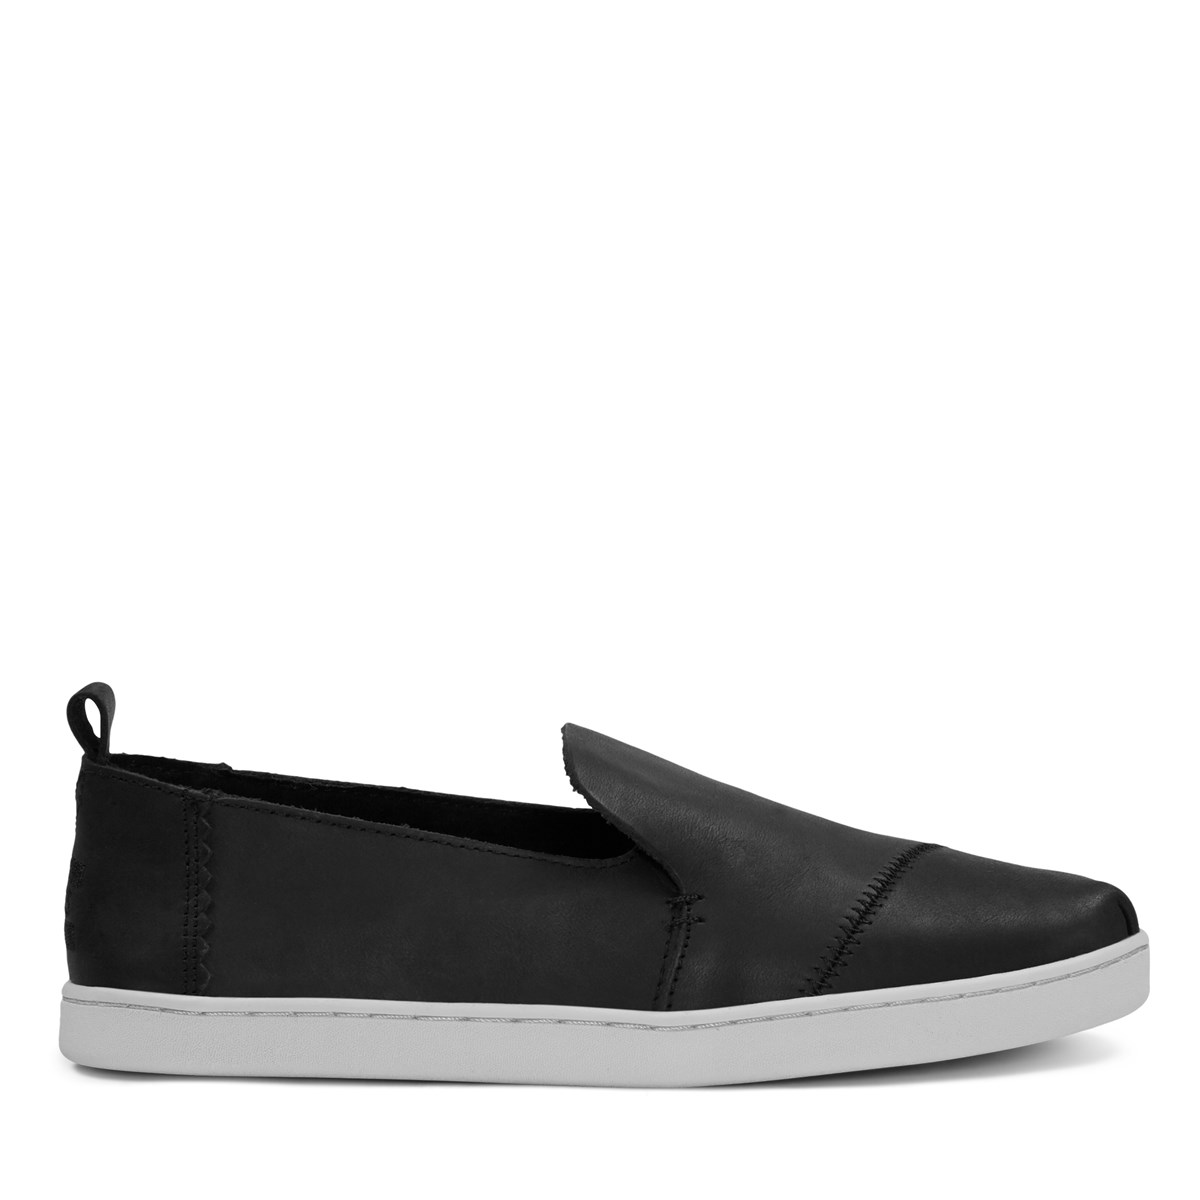 Women's Alpargata Suede Black Slip-On